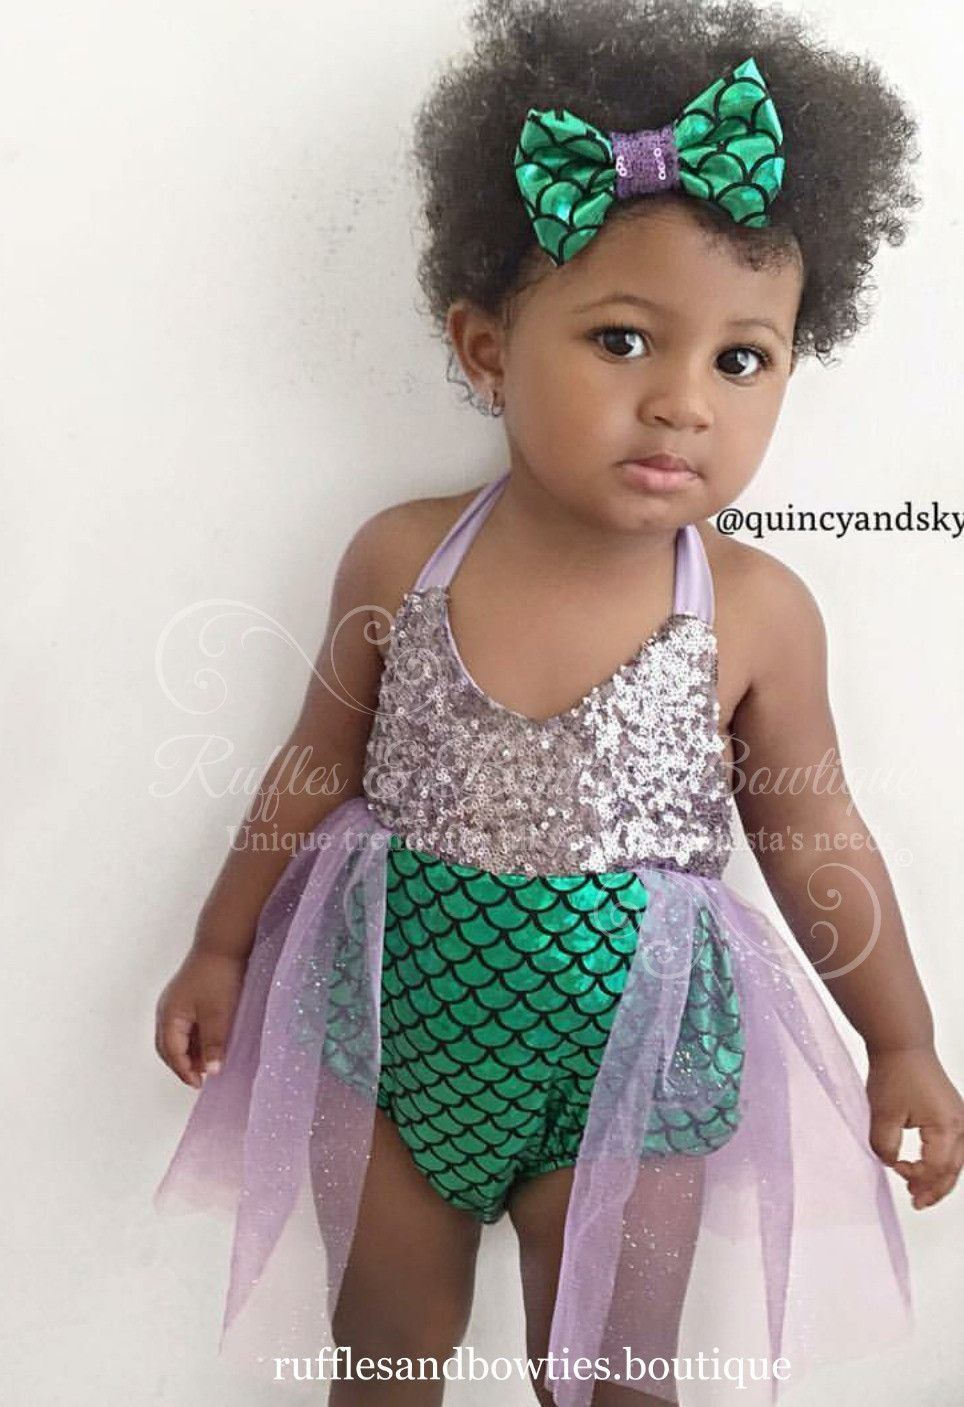 60059caf3038 A little glitz and glam for your favourite little mermaid. This romper is  absolutely precious with its Lilac sequin top and shimmering mermaid  bottoms.